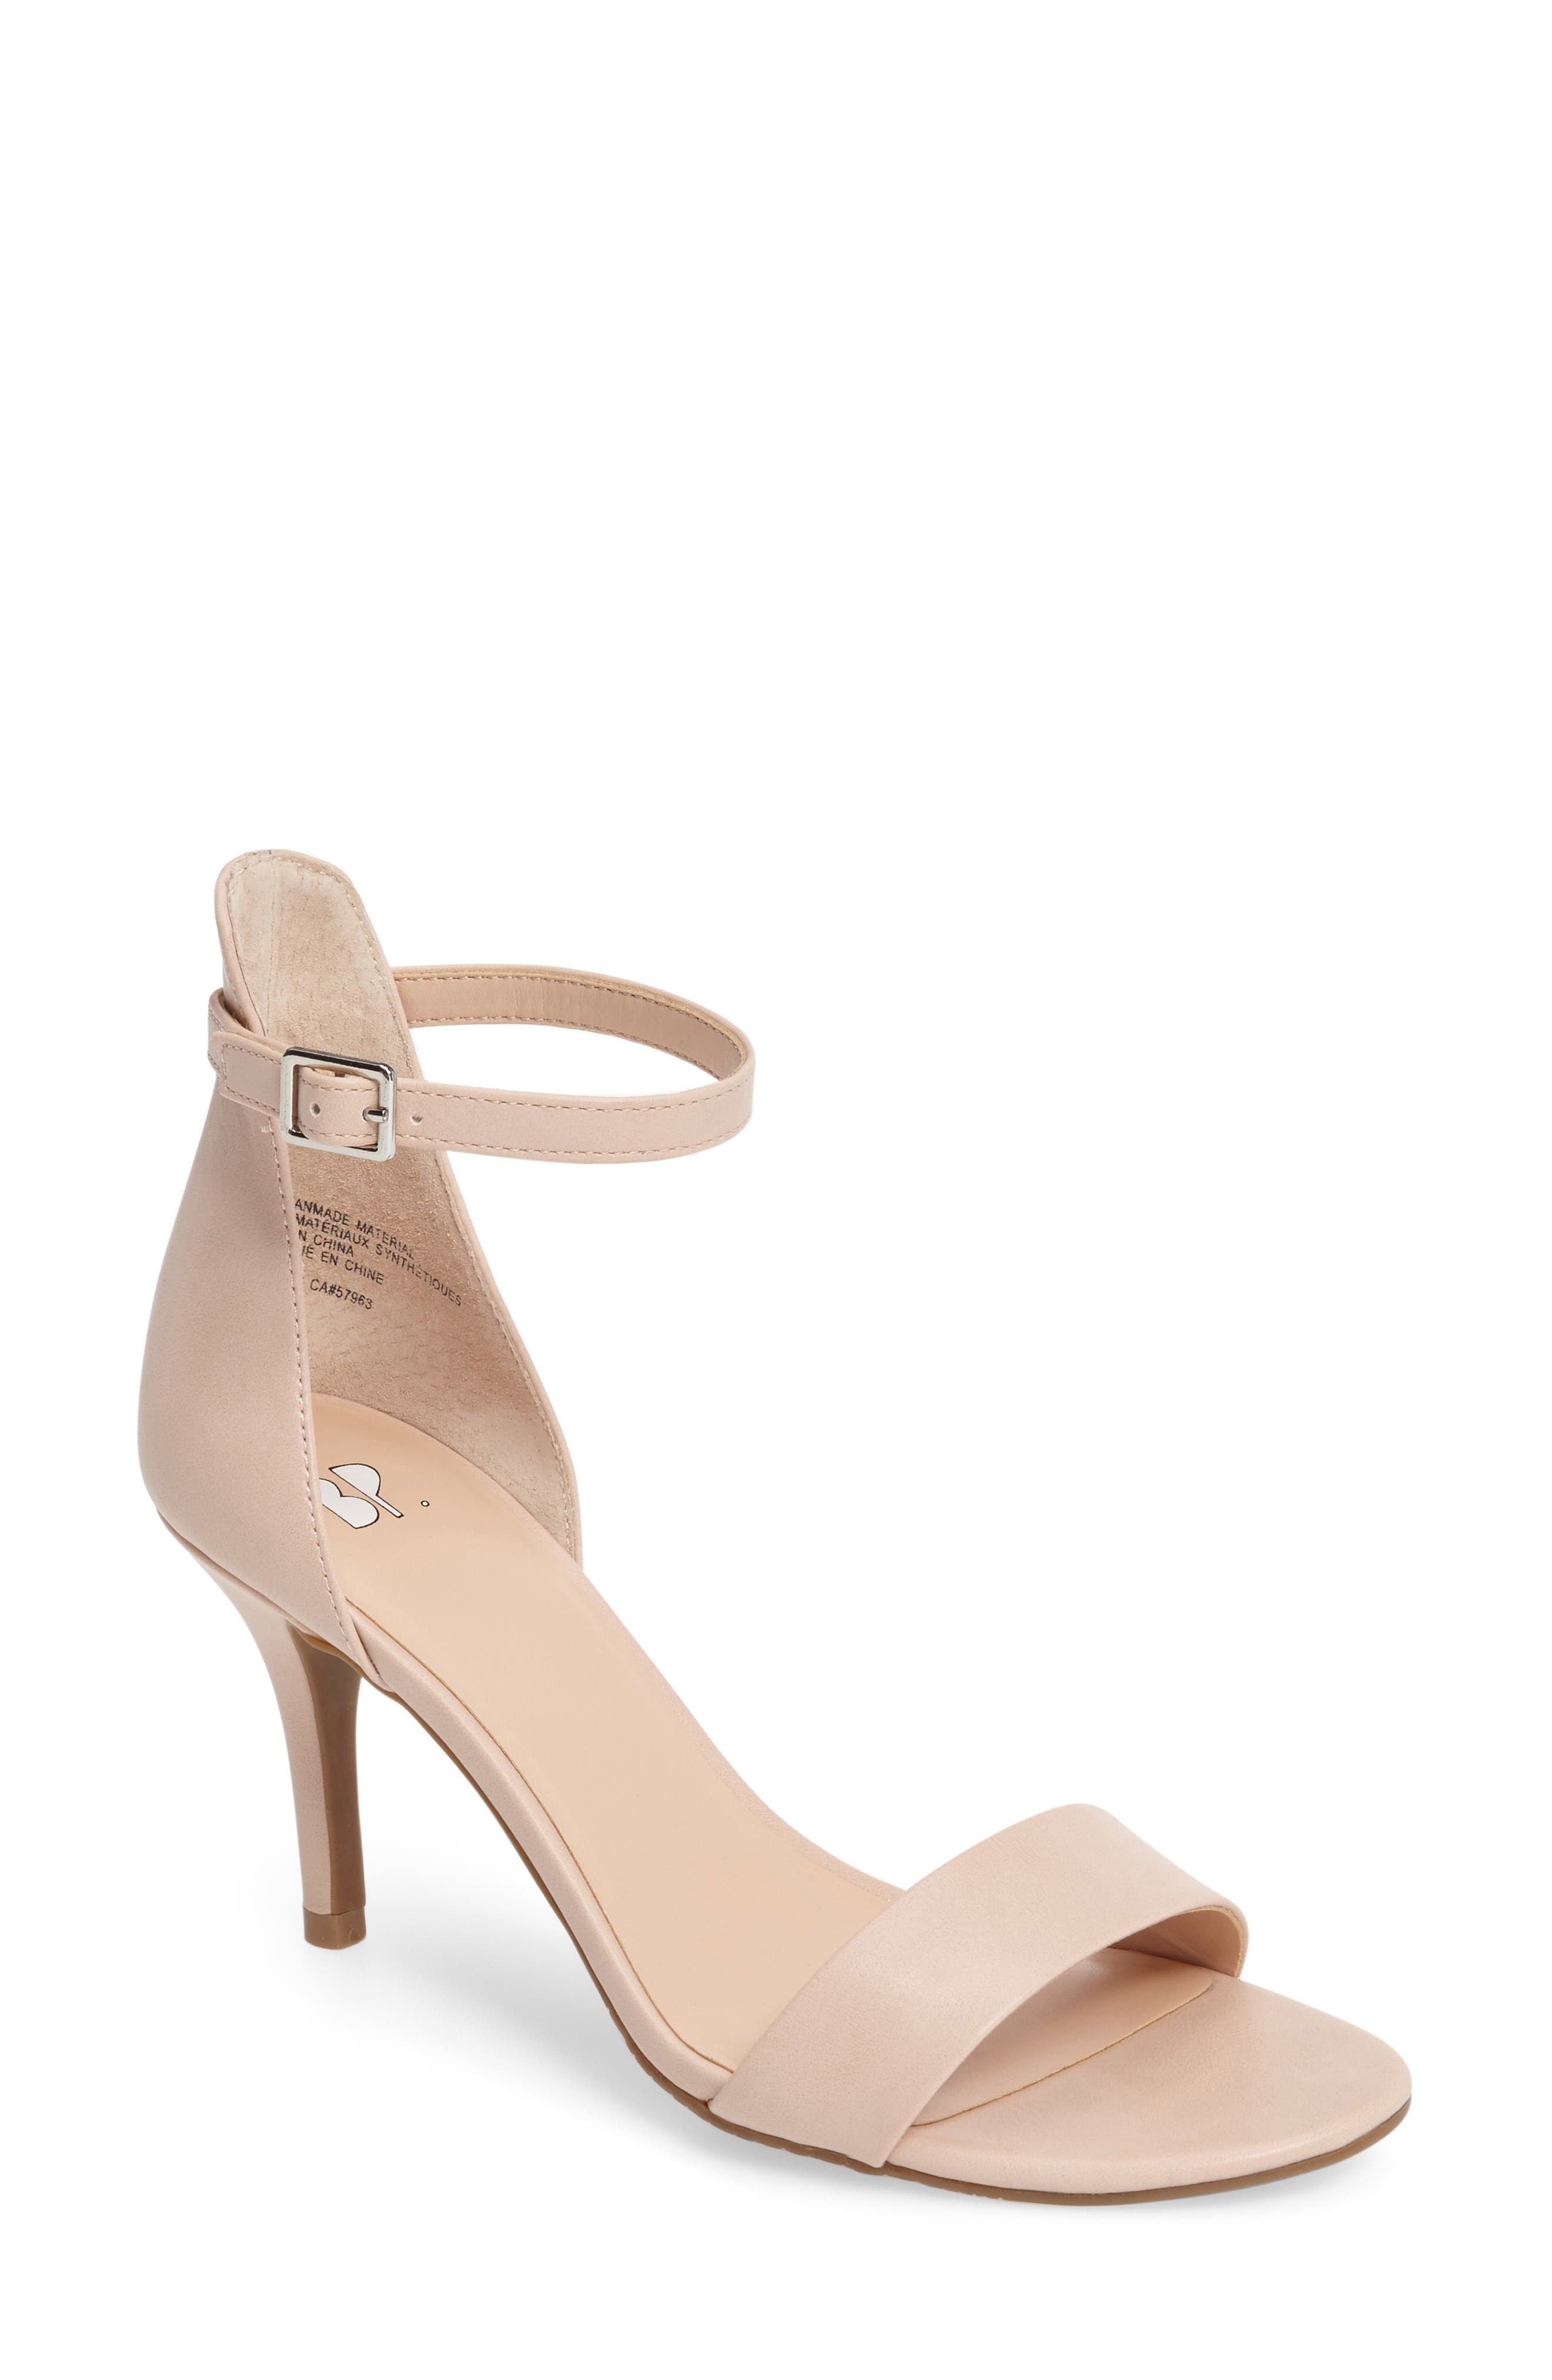 'Luminate' Open Toe Dress Sandal,                             Main thumbnail 1, color,                             Blush Faux Leather